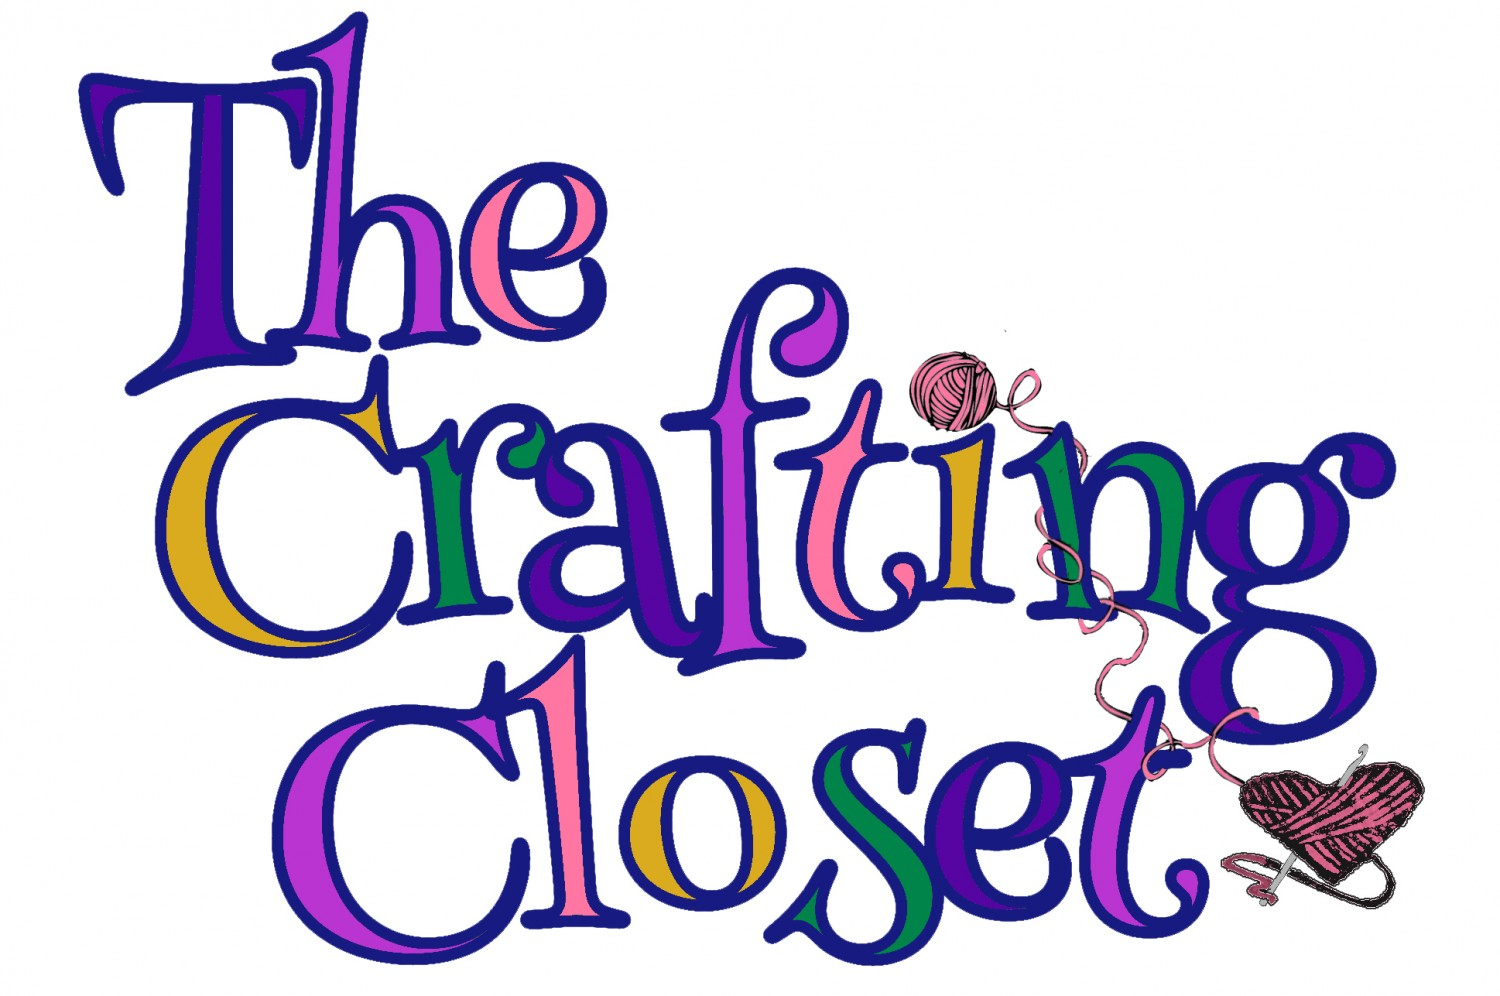 The Crafting Closet